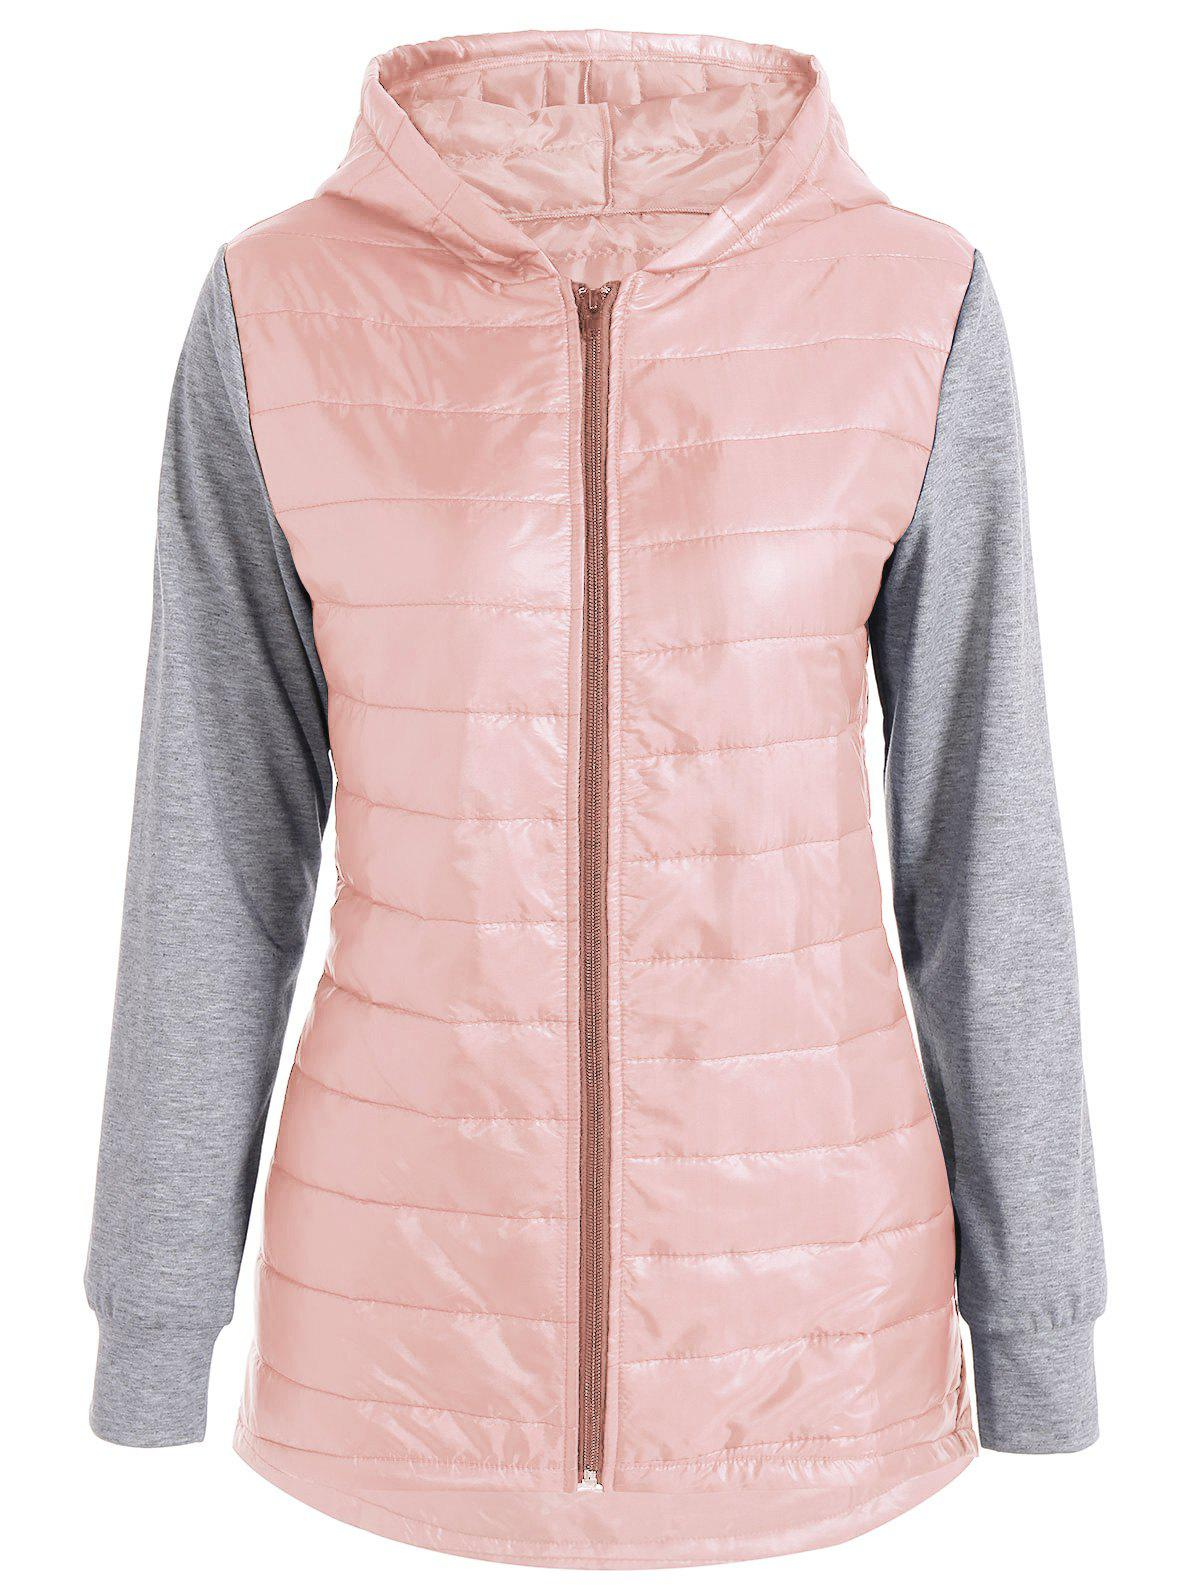 Store Hooded Padded Jacket